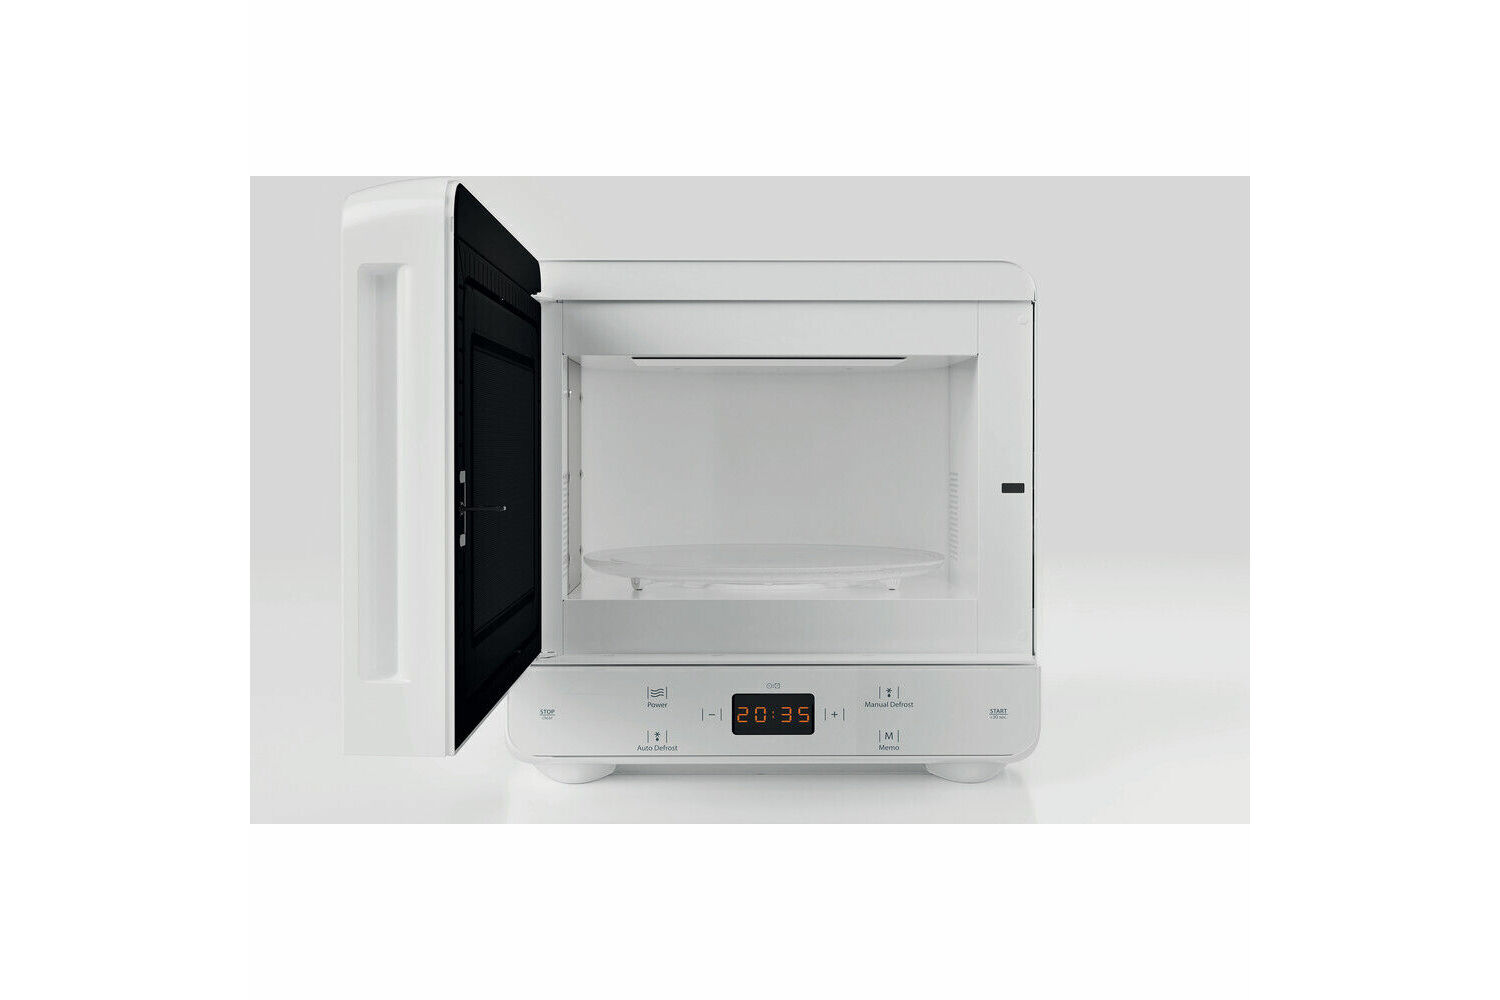 hotpoint mwh1331fw 700w 13l curve microwave white